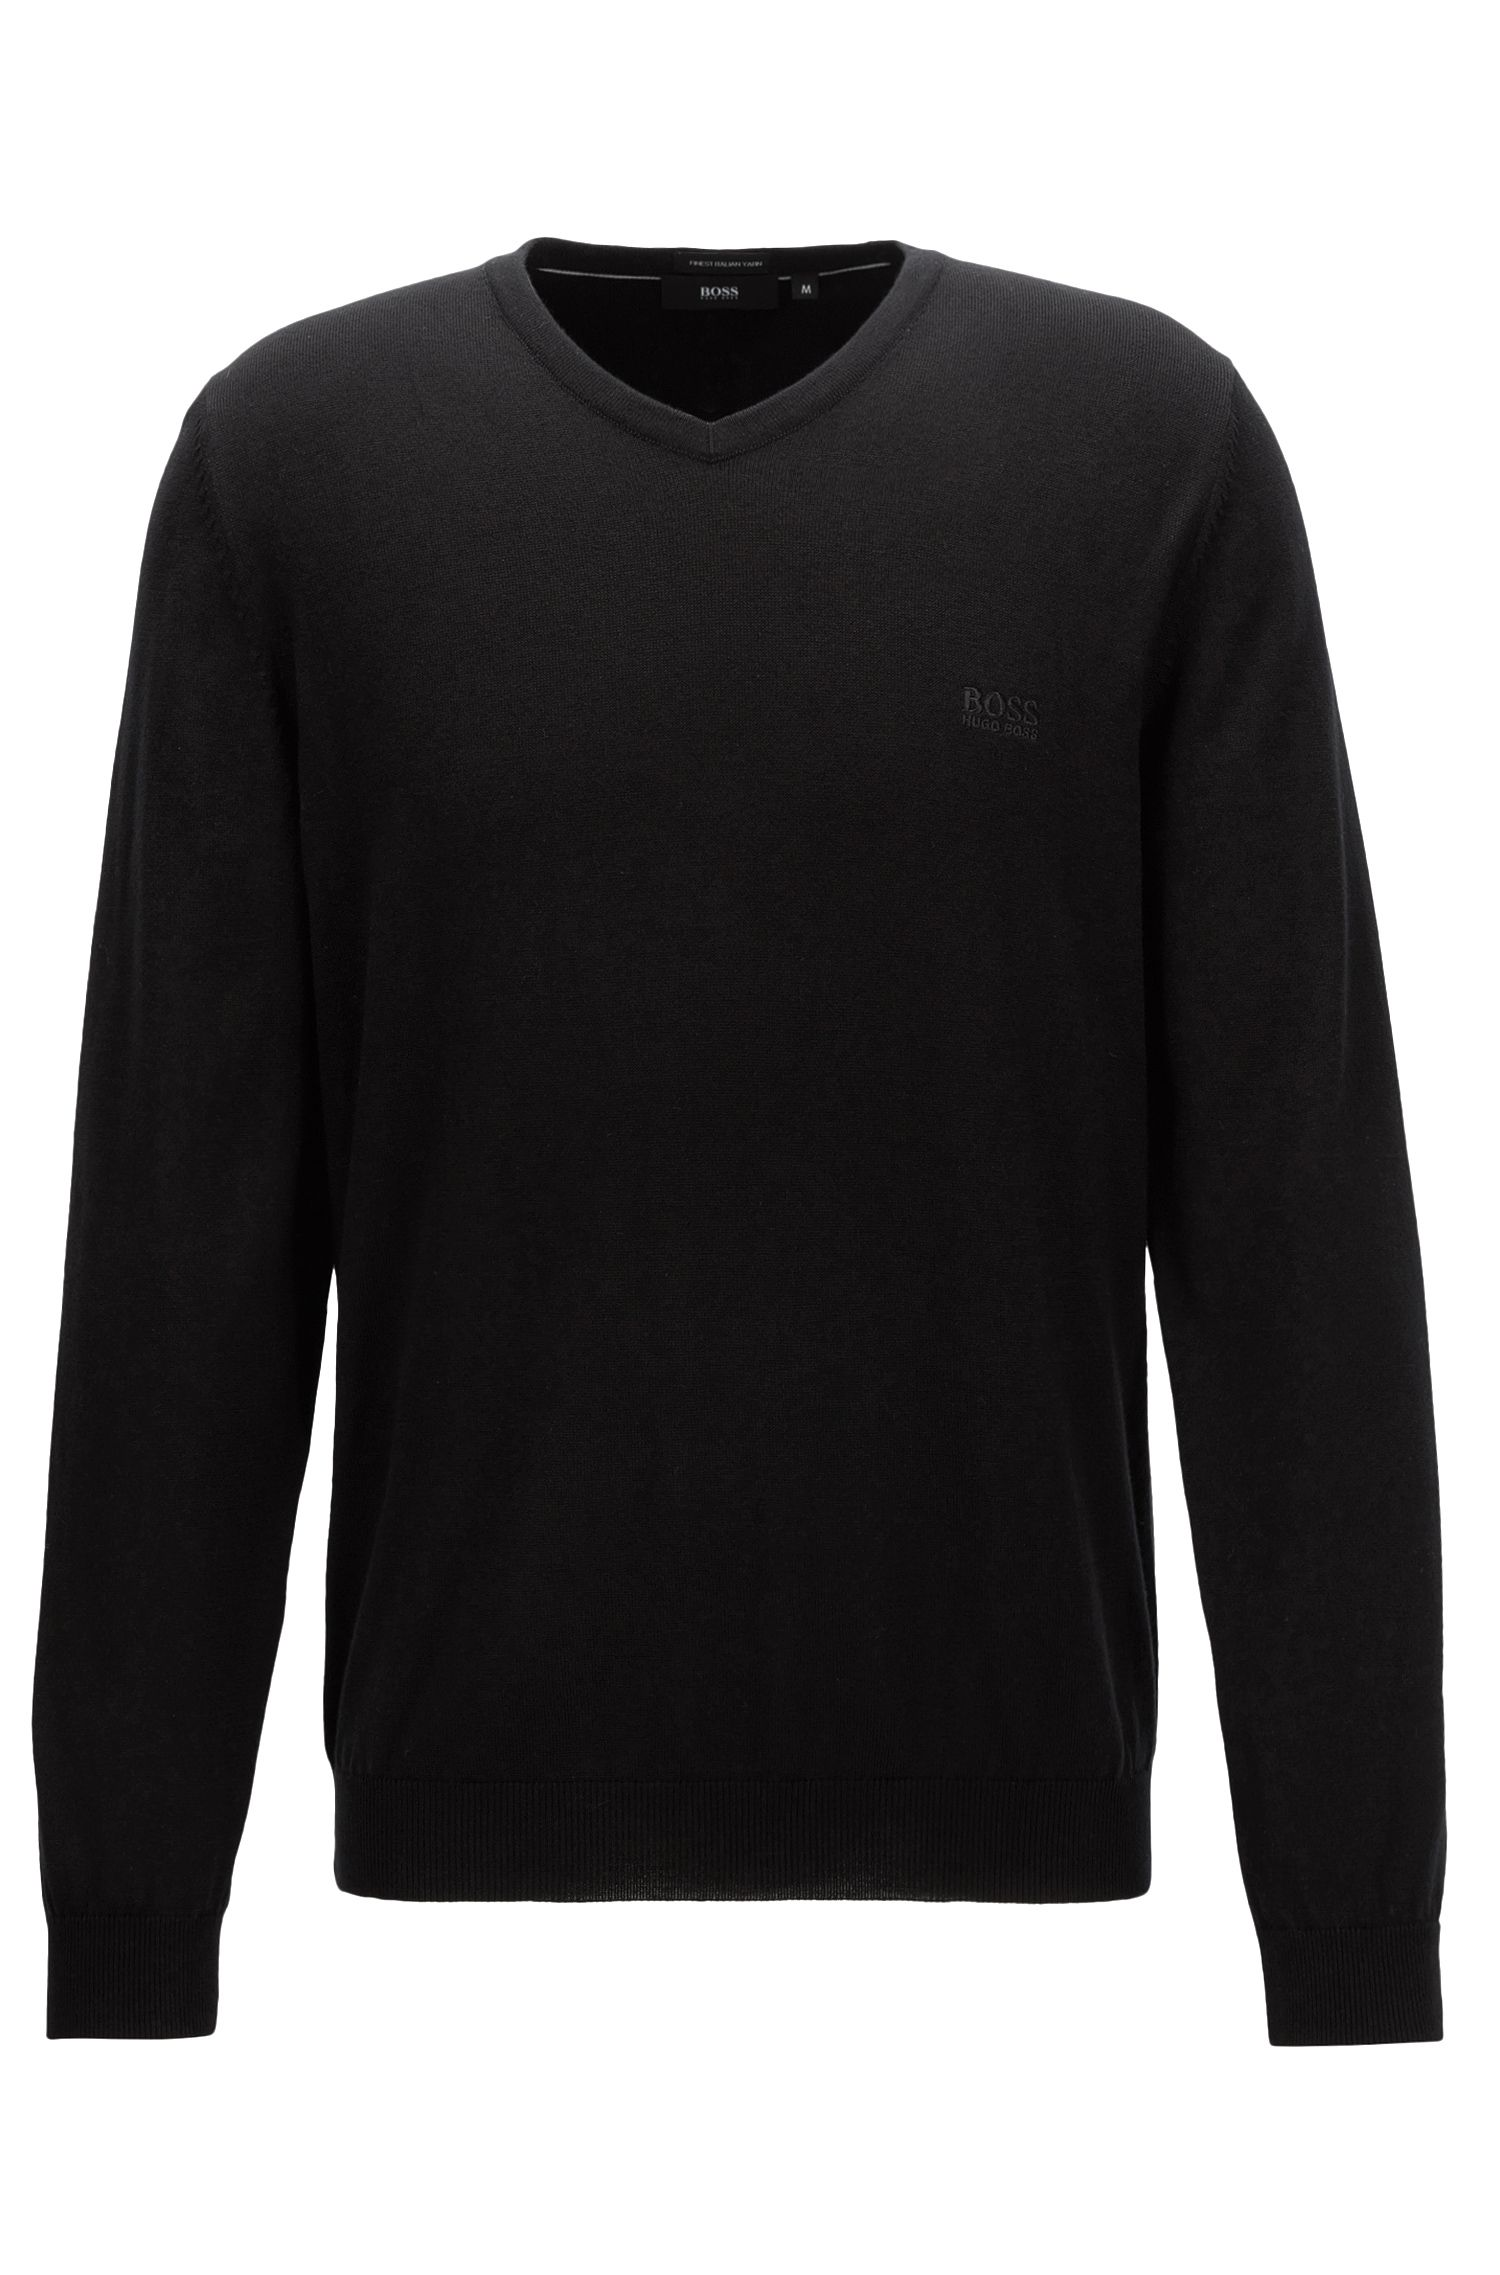 V-neck sweater in Italian cotton